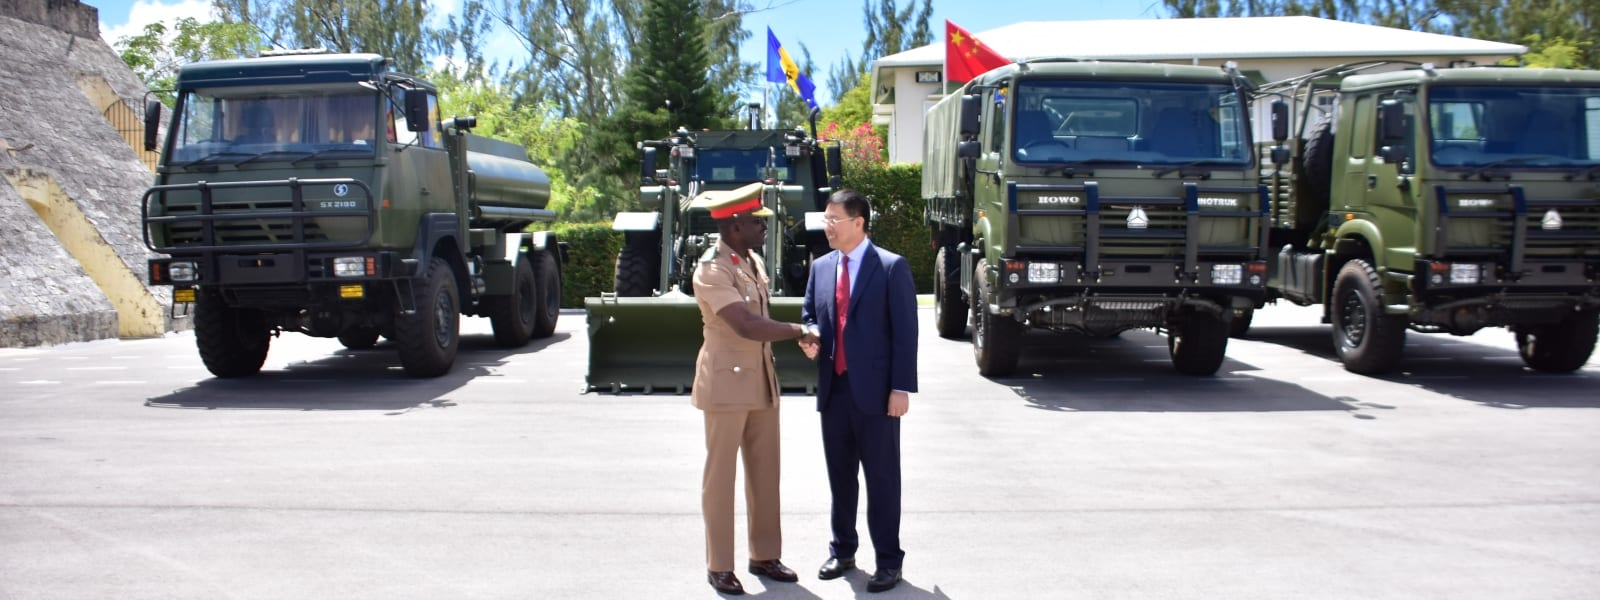 BDF Receives Equipment From China